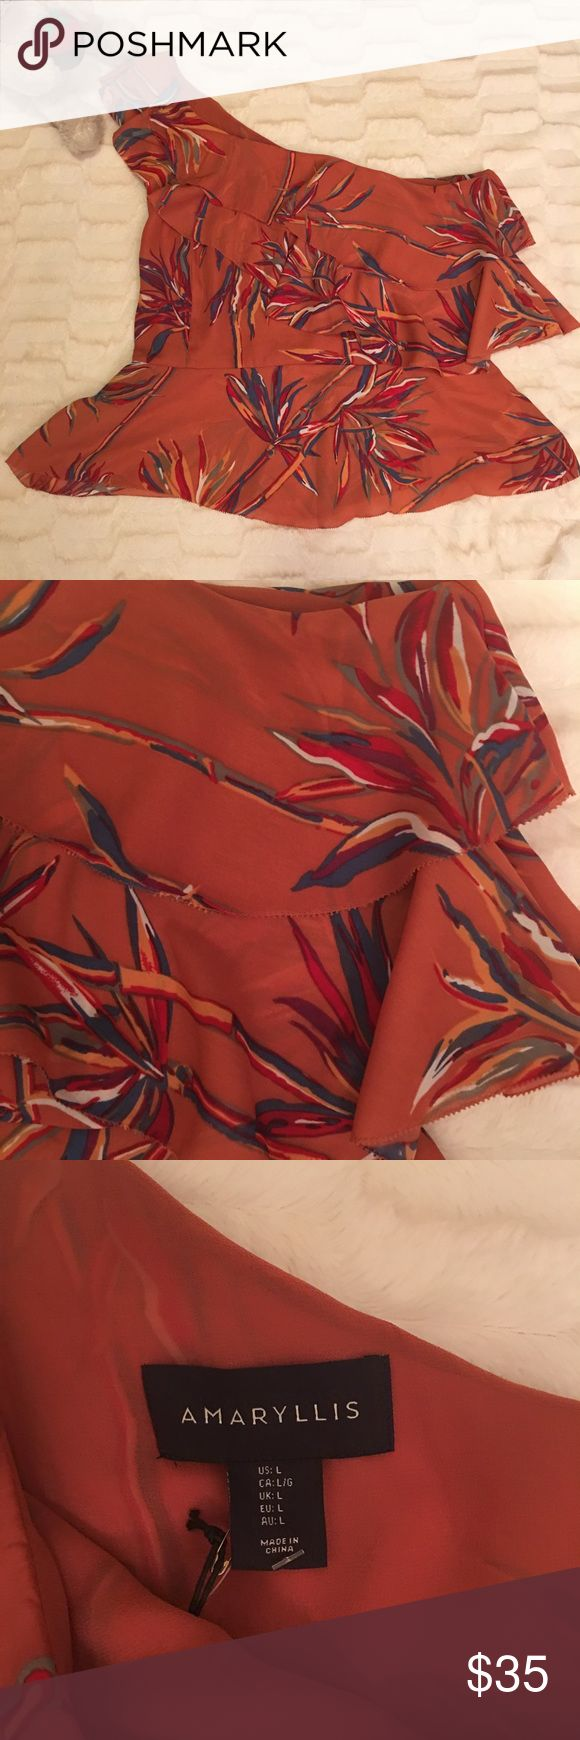 ANTHROPOLOGIE Amaryllis One Shoulder Double Ruffle This beauty features one shoulder styling with double ruffles at the top and a peplum at the bottom. Side zipper opening. Color is a rich rust with a floral pattern of blues reds and white.  Bust 20 in Anthropologie Tops Blouses